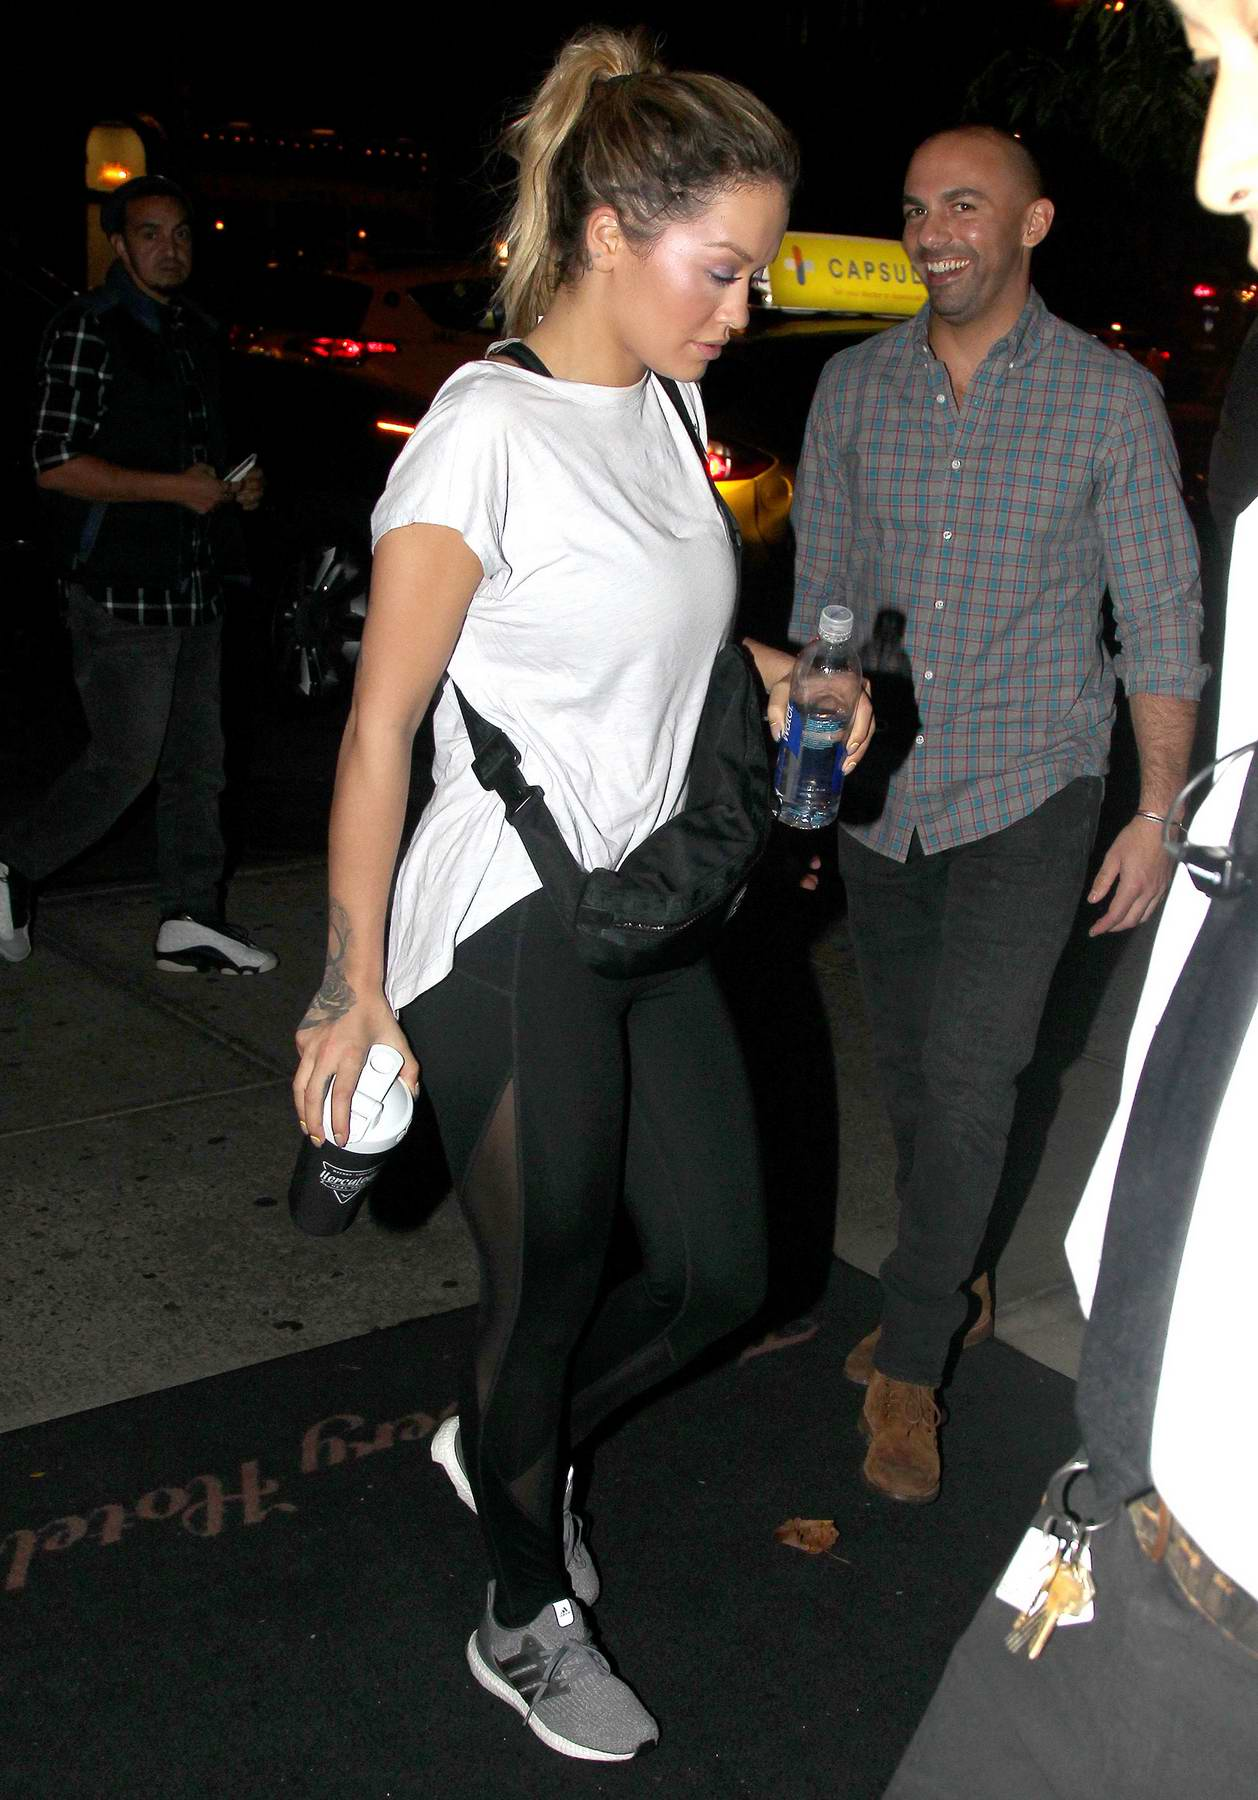 Rita Ora is spotted returning to her hotel after a late night gym session in New York City